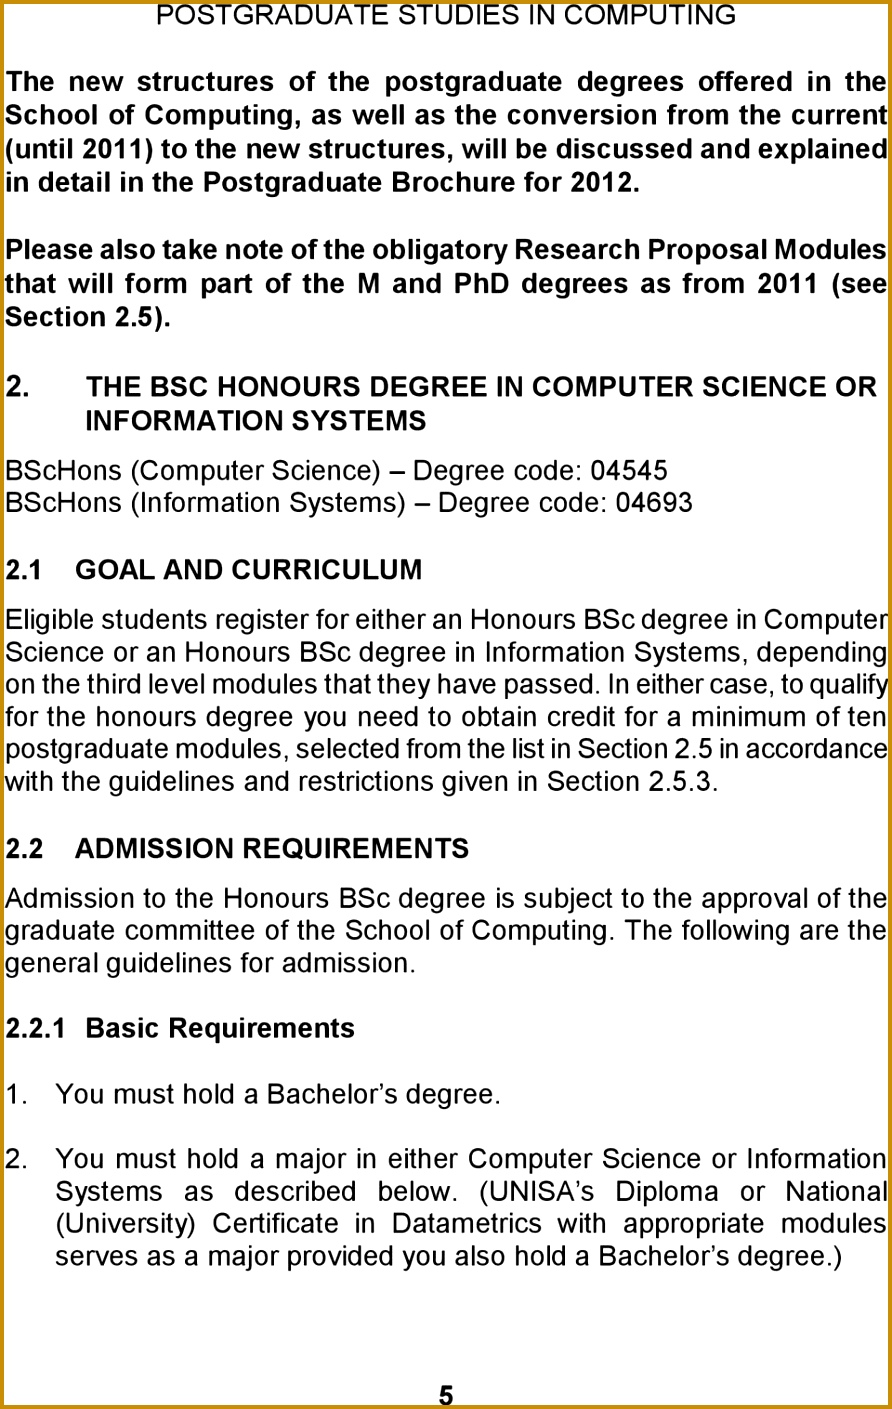 Research proposal example for phd in puter science Science research … 1409892